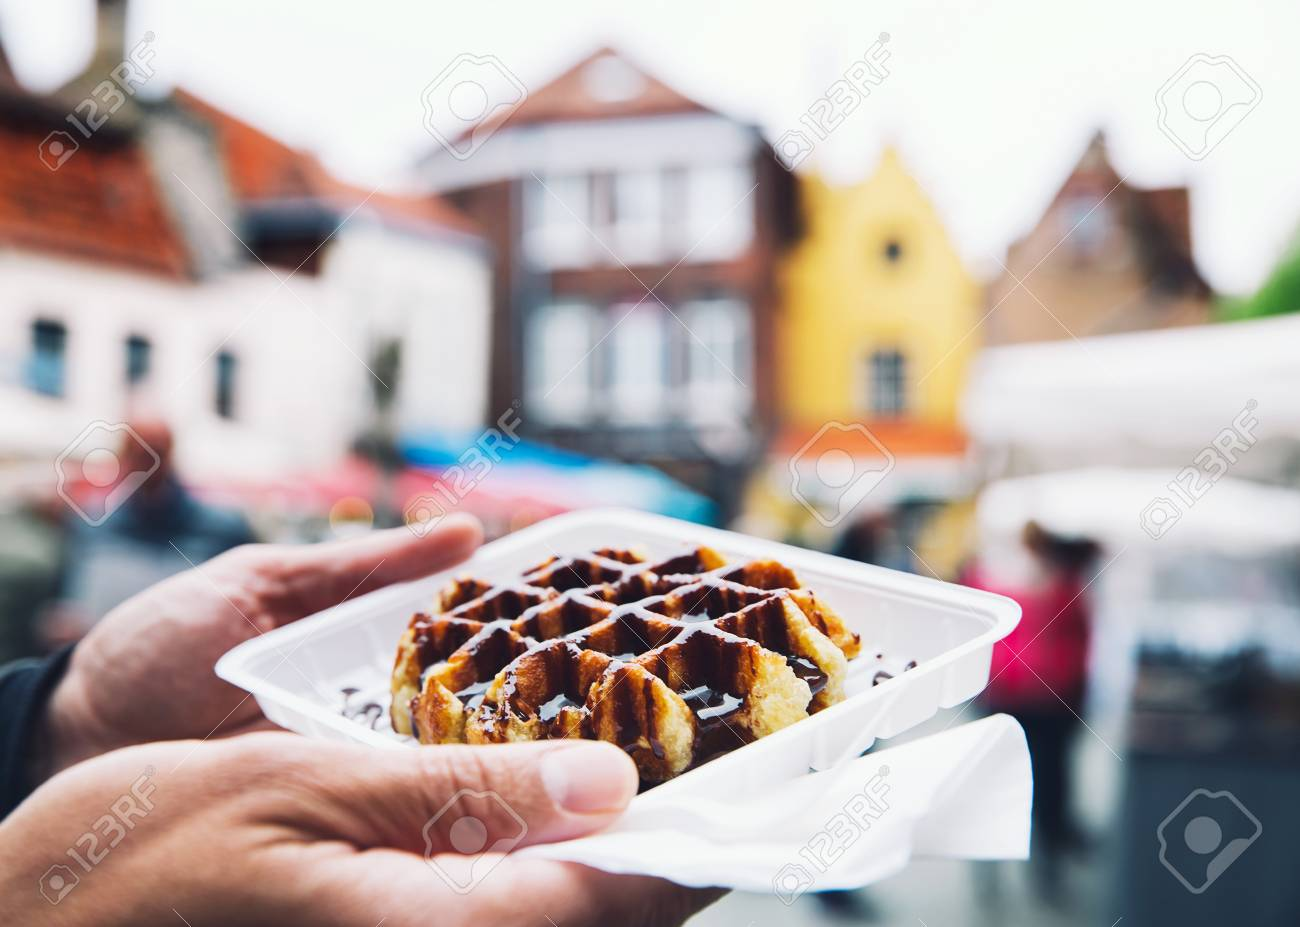 Tourist holds in hand popular street food - Belgium tasty waffle with chocolate sauce on the background of city tourist streets of Bruges, Belgium, Europe. Traditional Belgian dessert, pastry. - 78568661